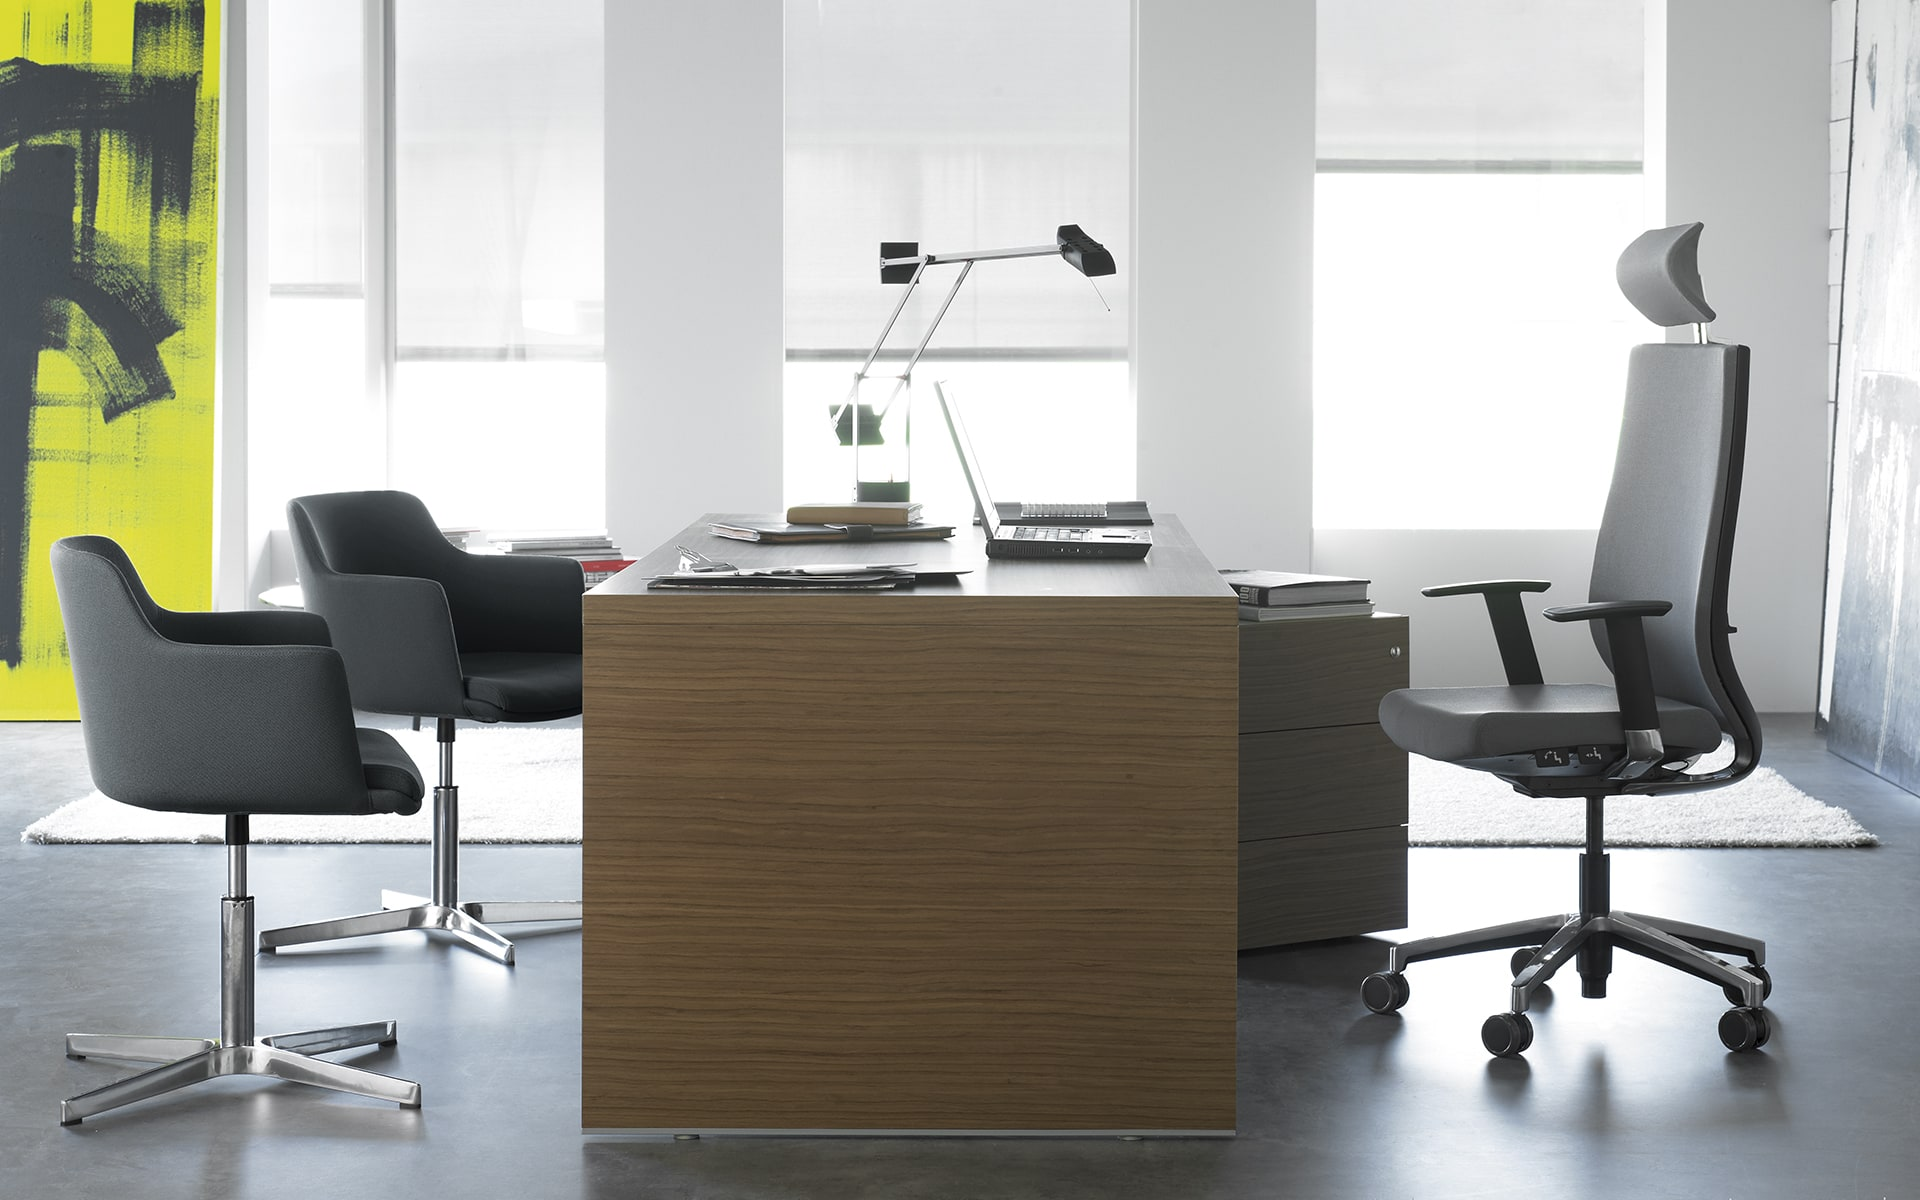 Gray Forma 5 Eben office chair by ITO Design at modern workplace